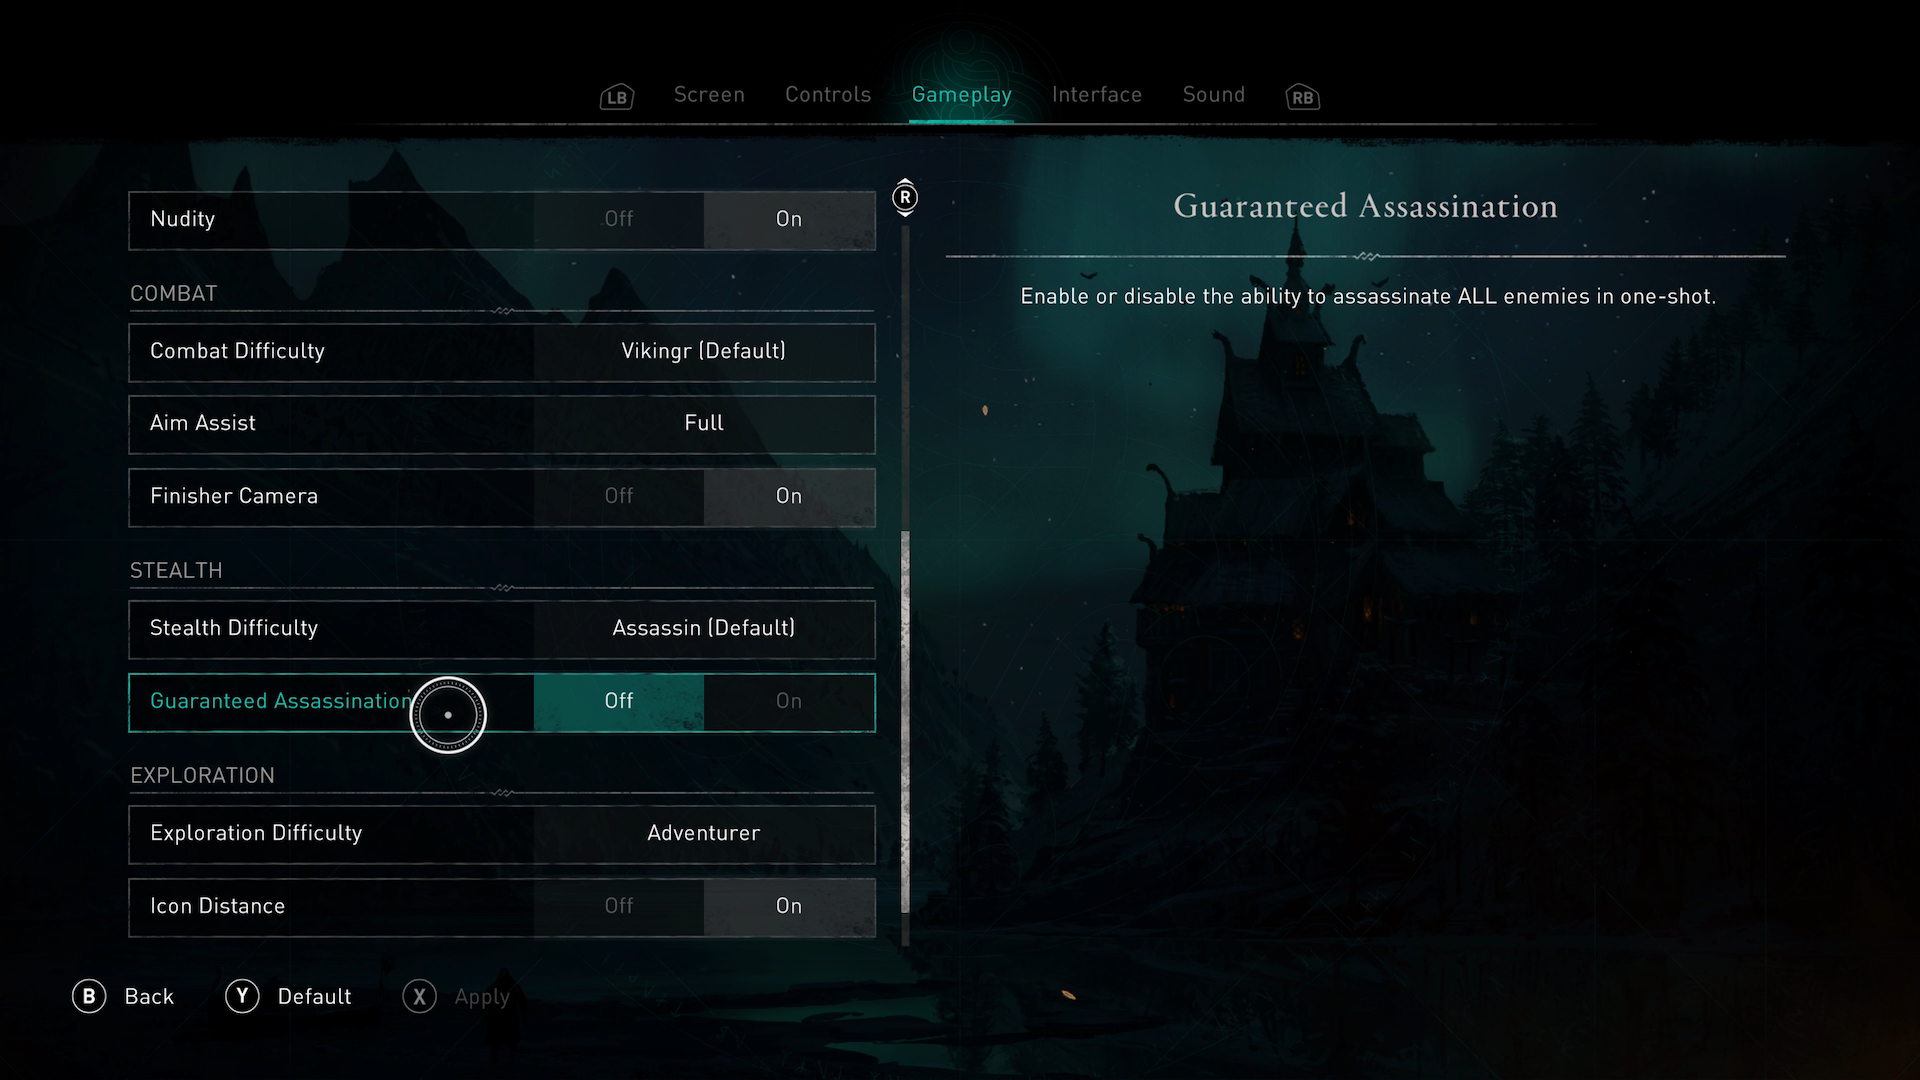 A screenshot showing the Guaranteed Assassination options in Assassins Creed Valhalla.